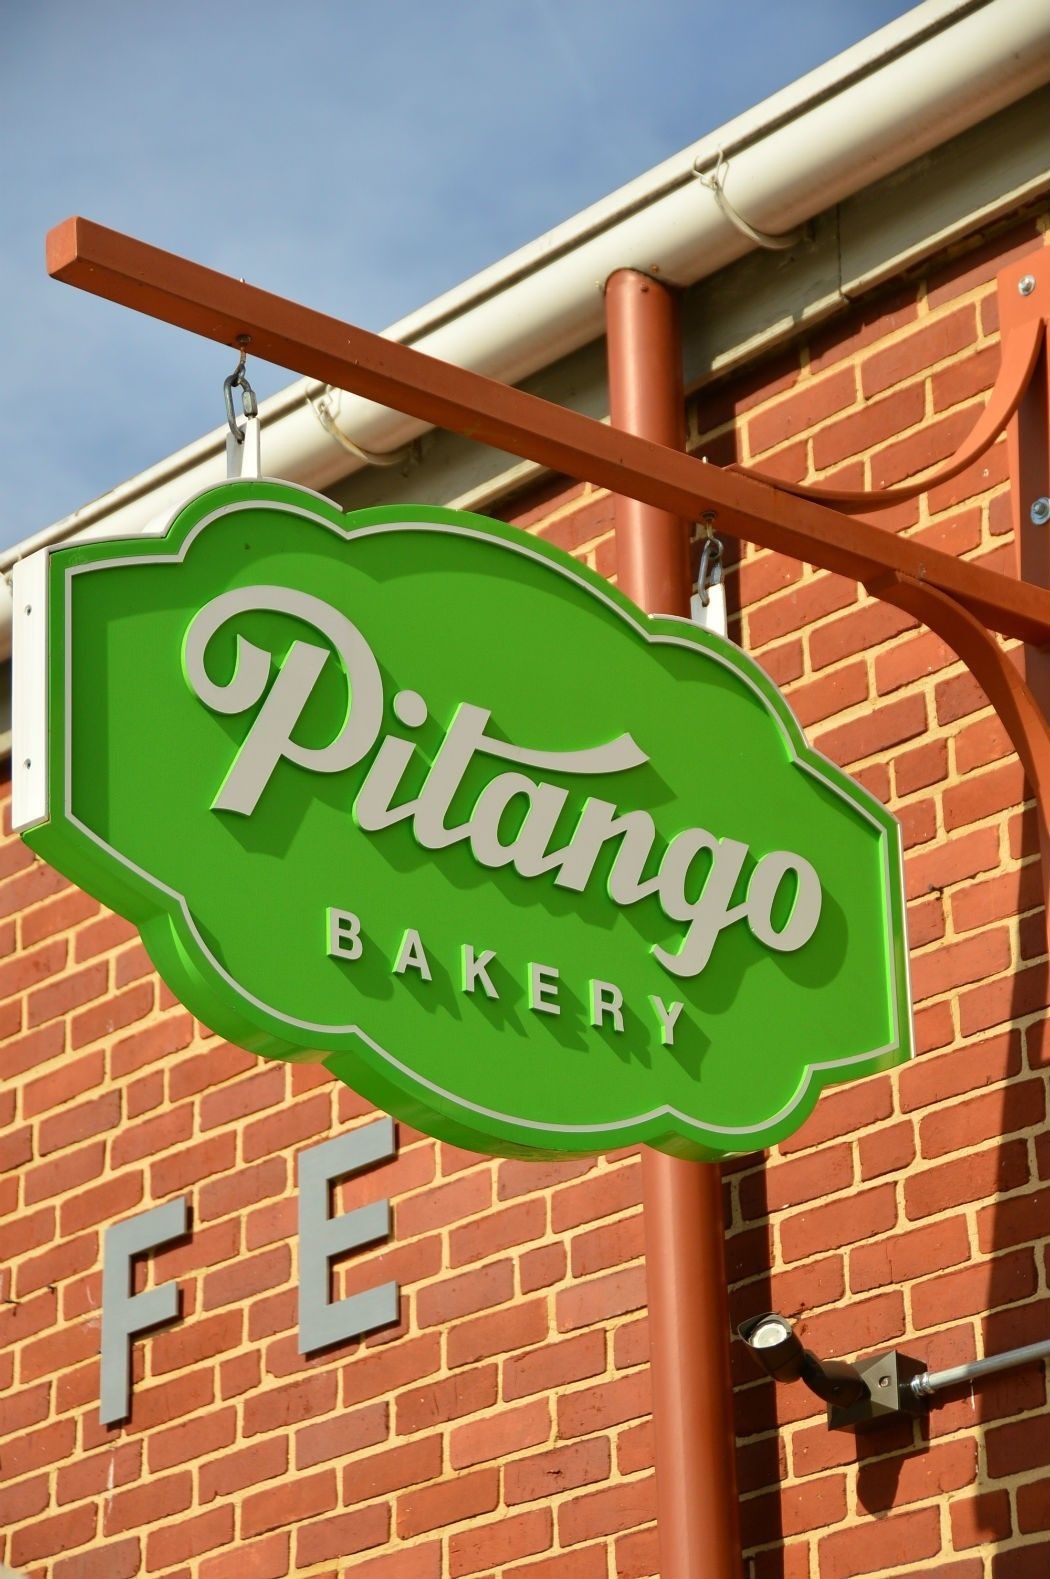 green sign for pitango bakery baltimore